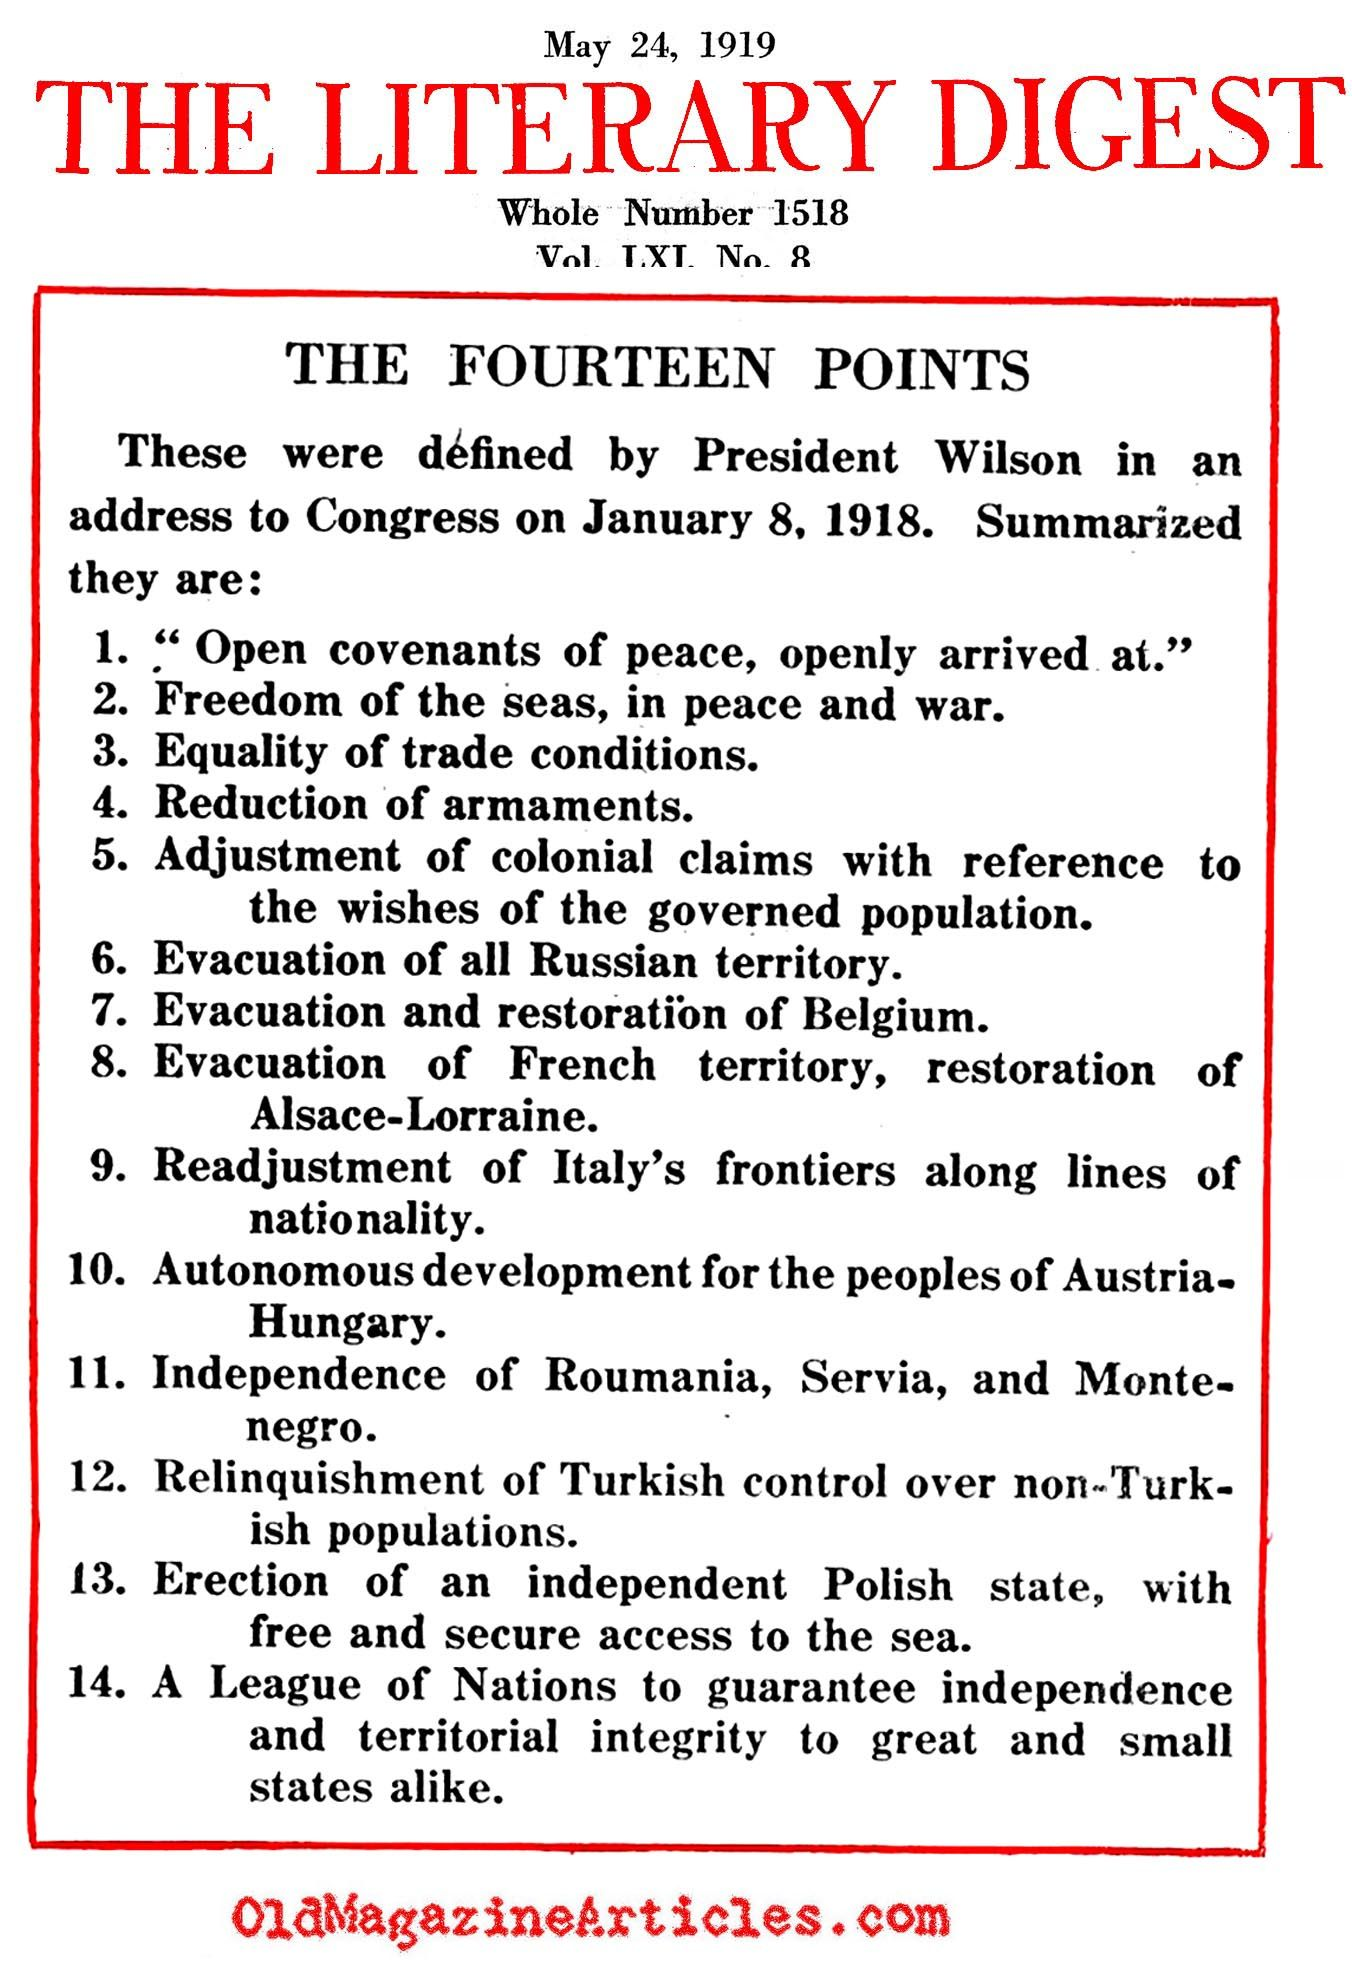 Picture 16 President Wilson Outlines His Fourteen Points